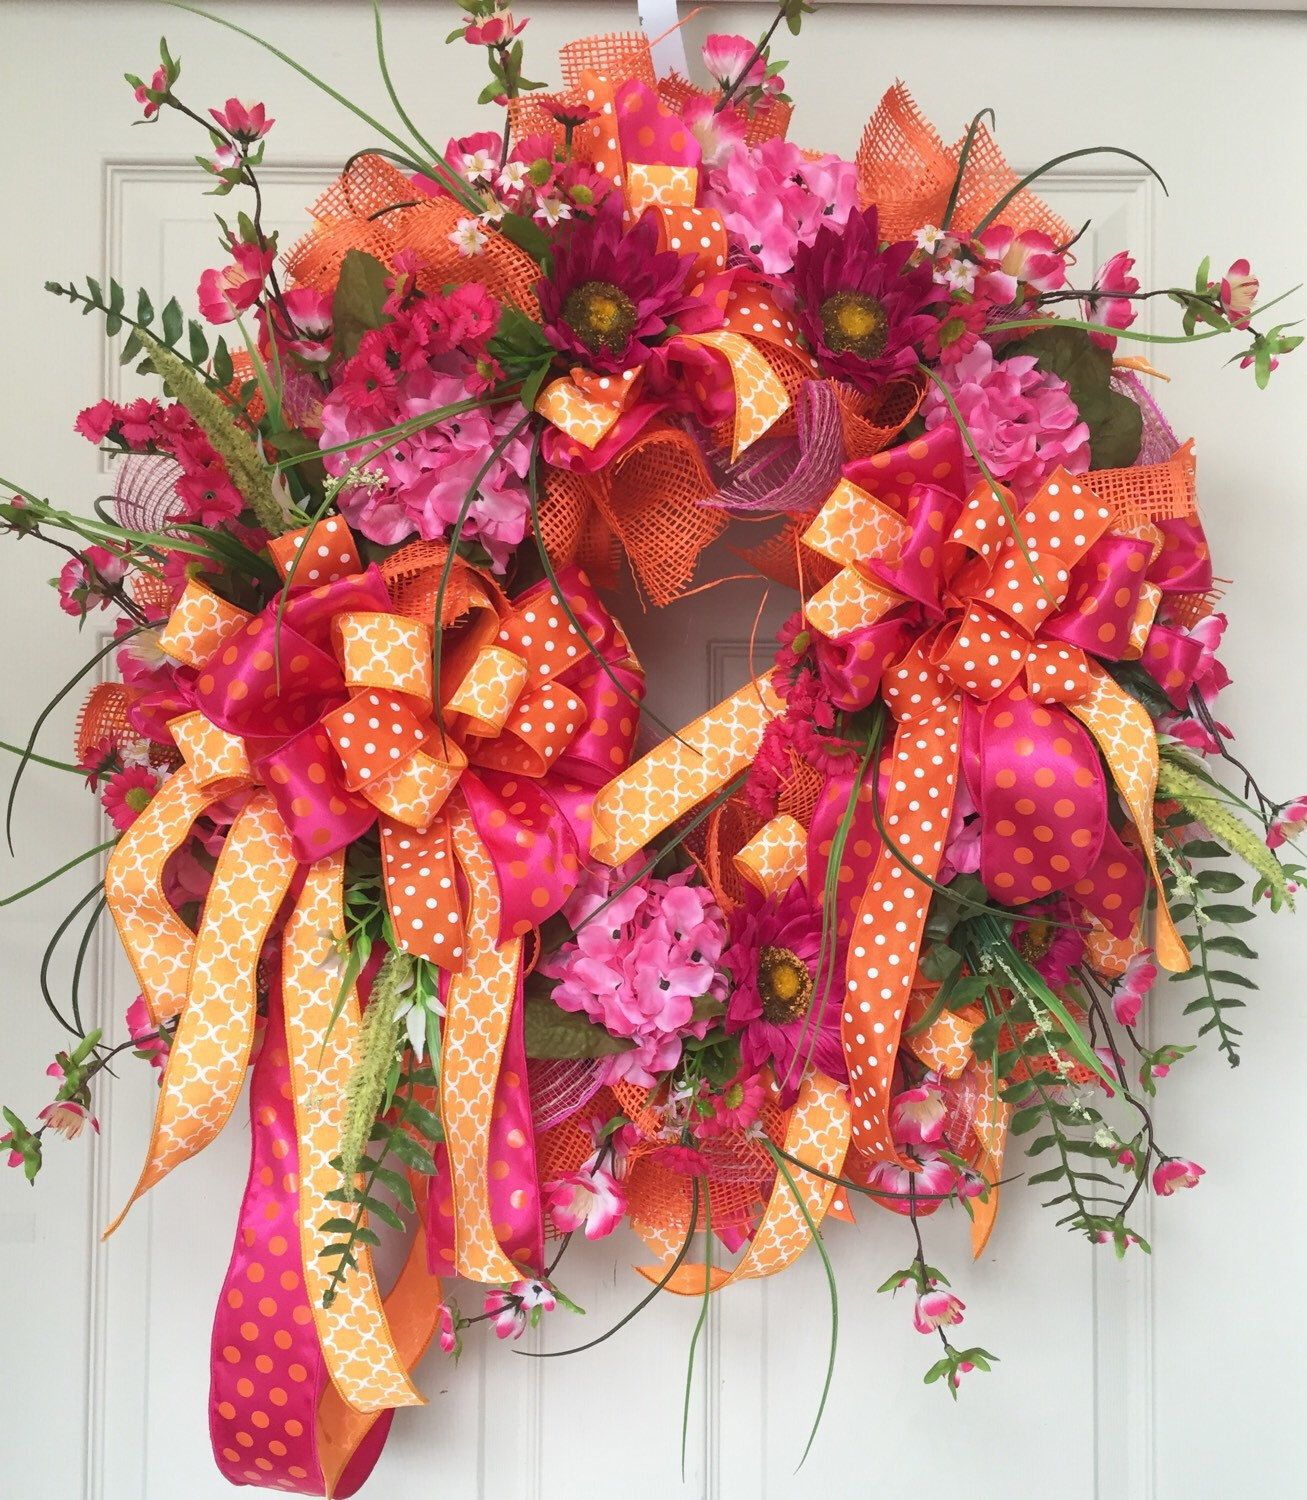 Whimical Ribbon Mesh Spring and Summer Wreath by